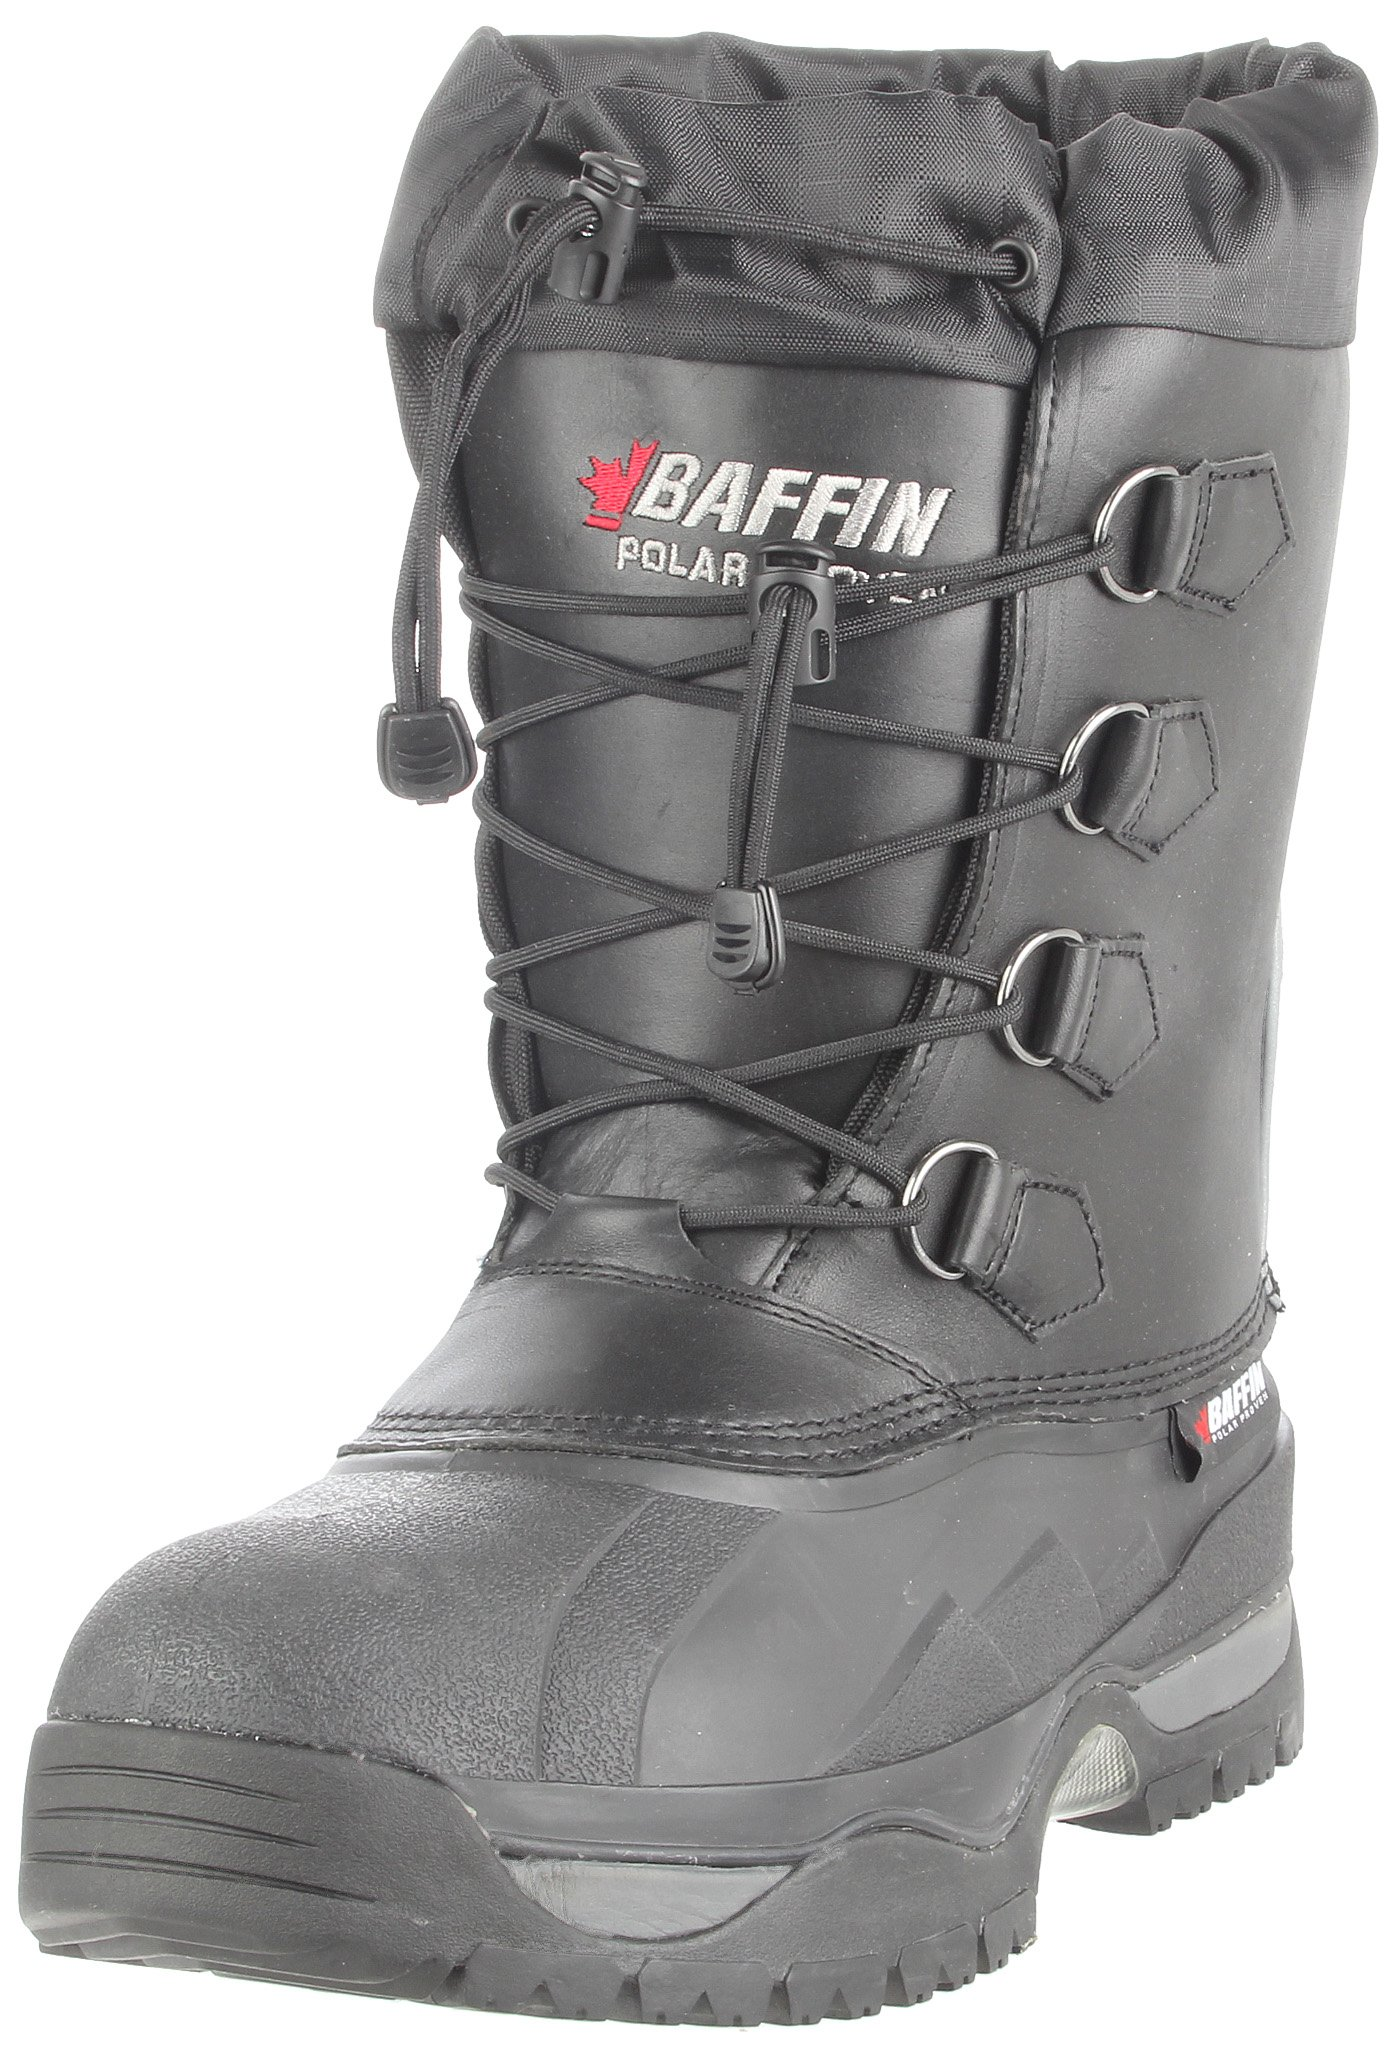 Baffin Men's Shackleton Snow Boot,Black,10 M US